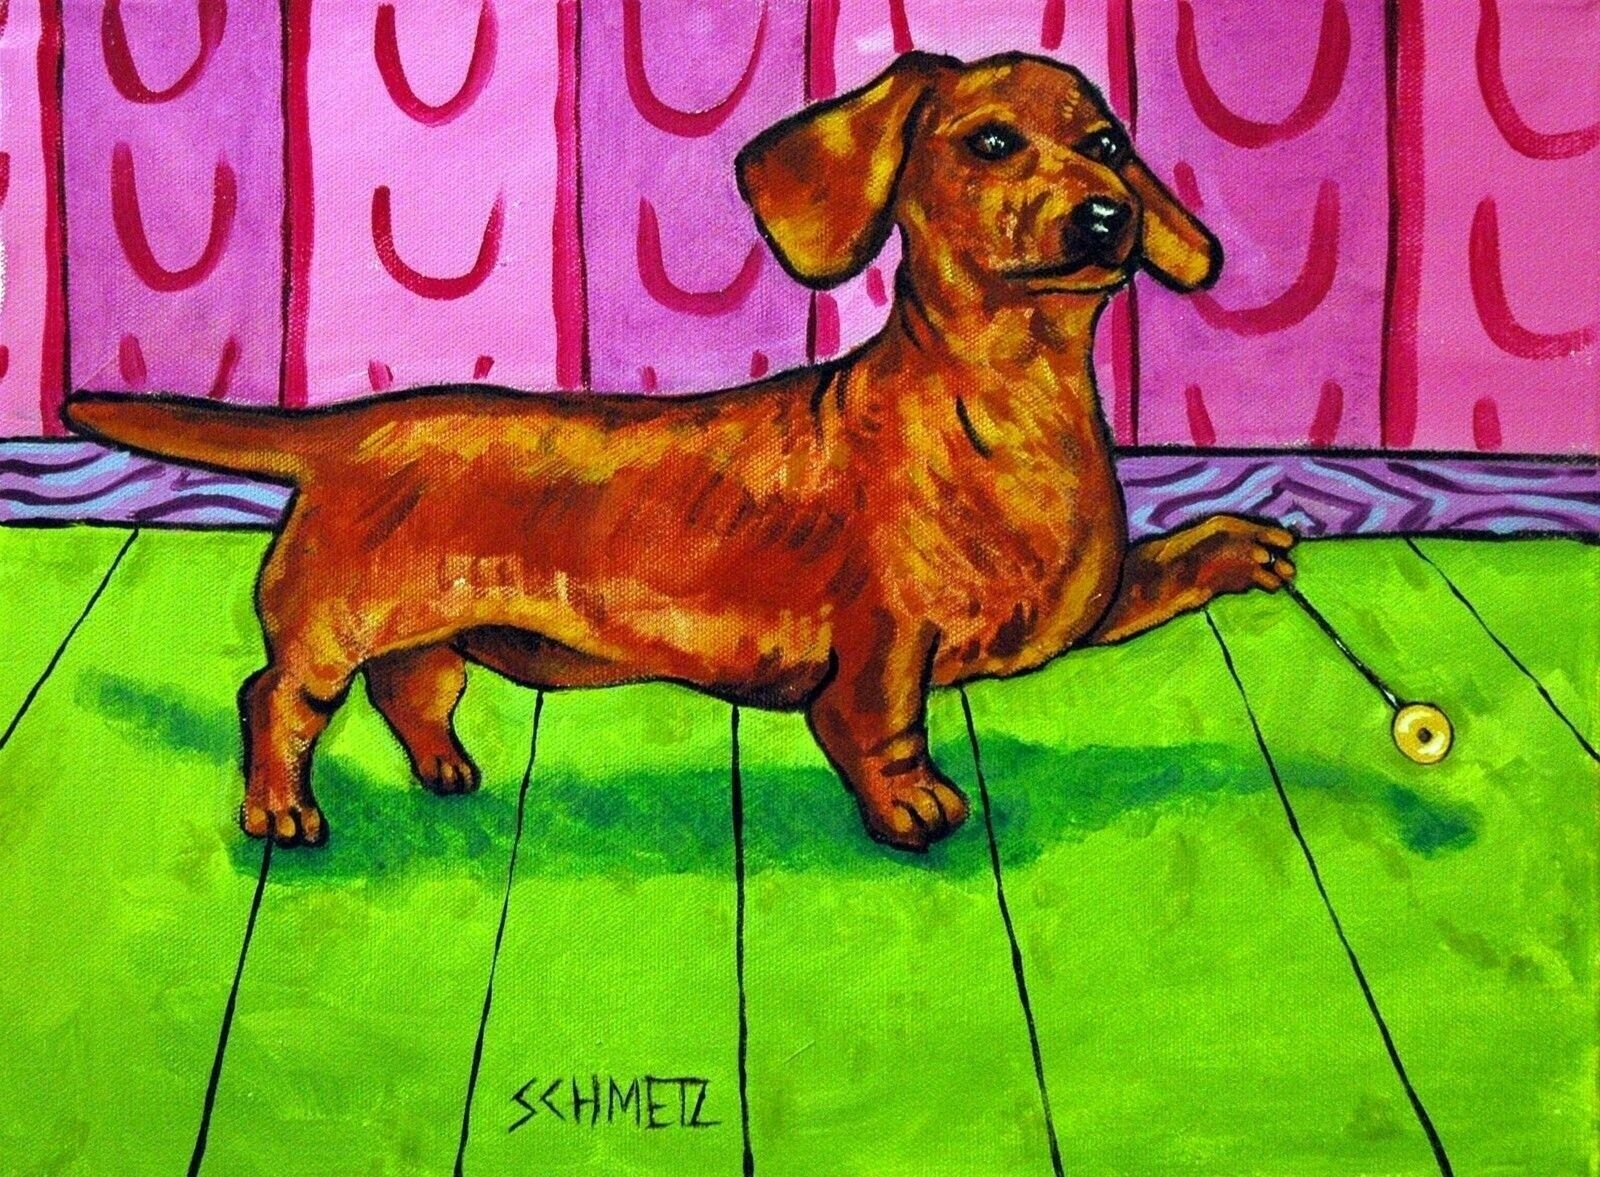 Dachshund sleeping with green blanket bedroom art  dog print 4x6 glossy